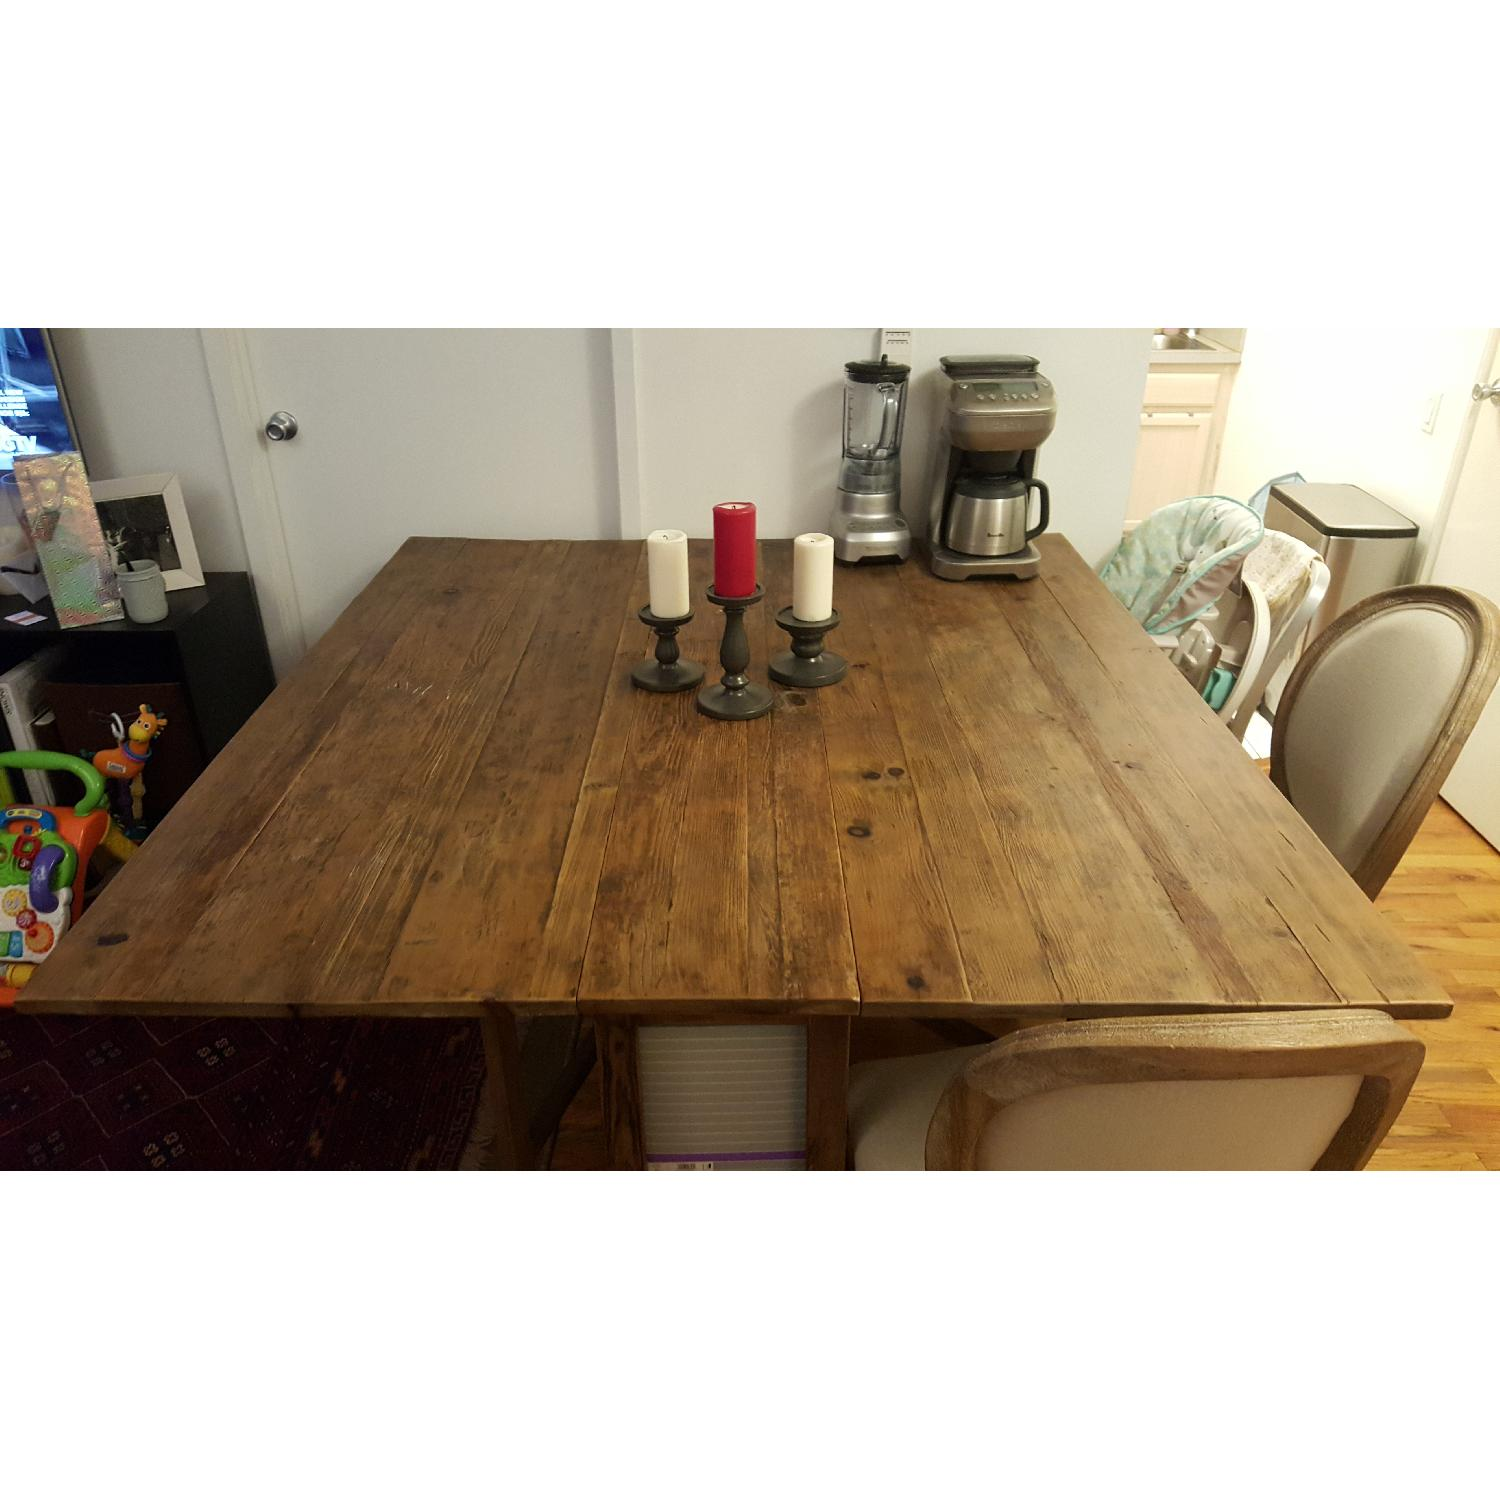 ABC Home Natural Wood Dining Table w/ 2 Sided Drop Leaf - image-1